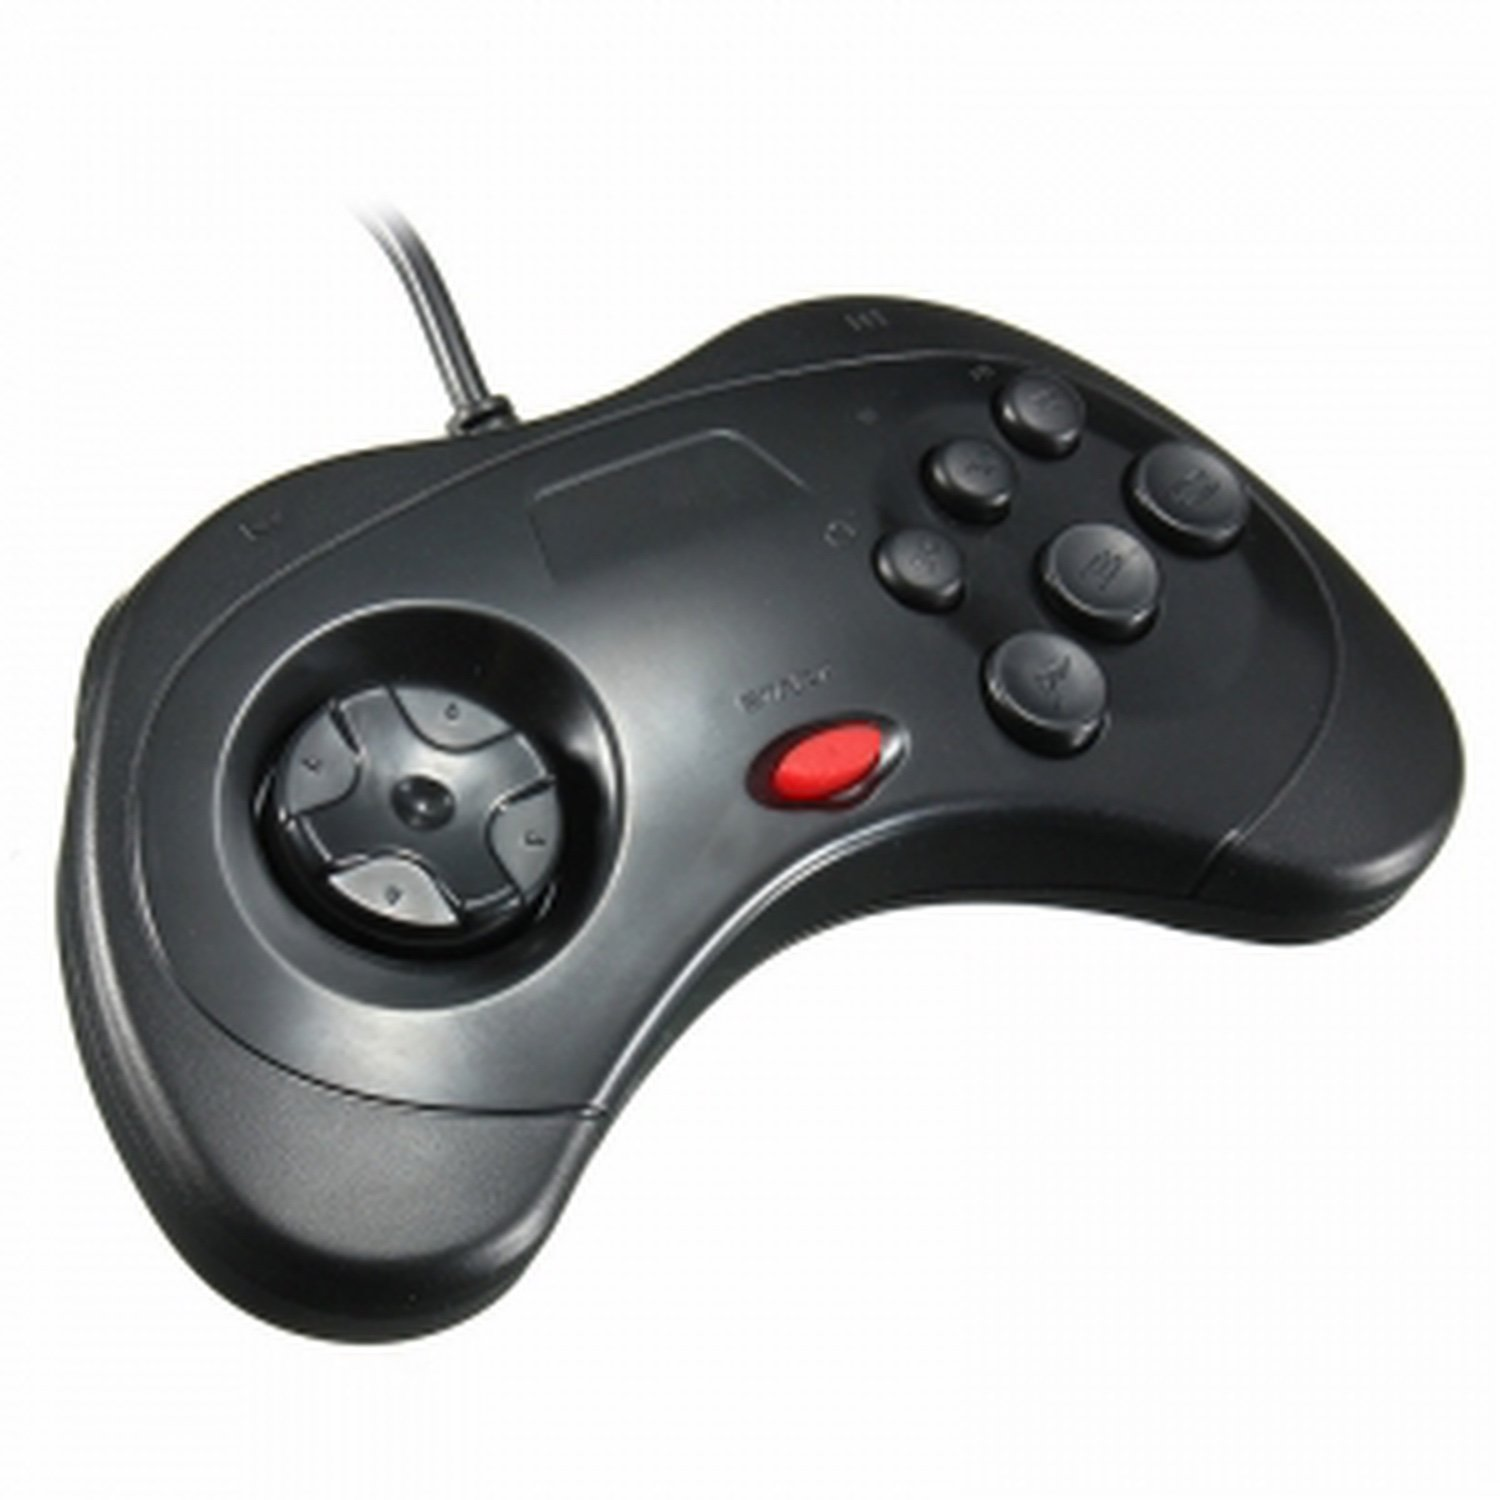 BLACK SEGA SATURN STYLE PC USB CONTROLLER FOR PC AND MAC temper usb thermometer temperature recorder for pc laptop